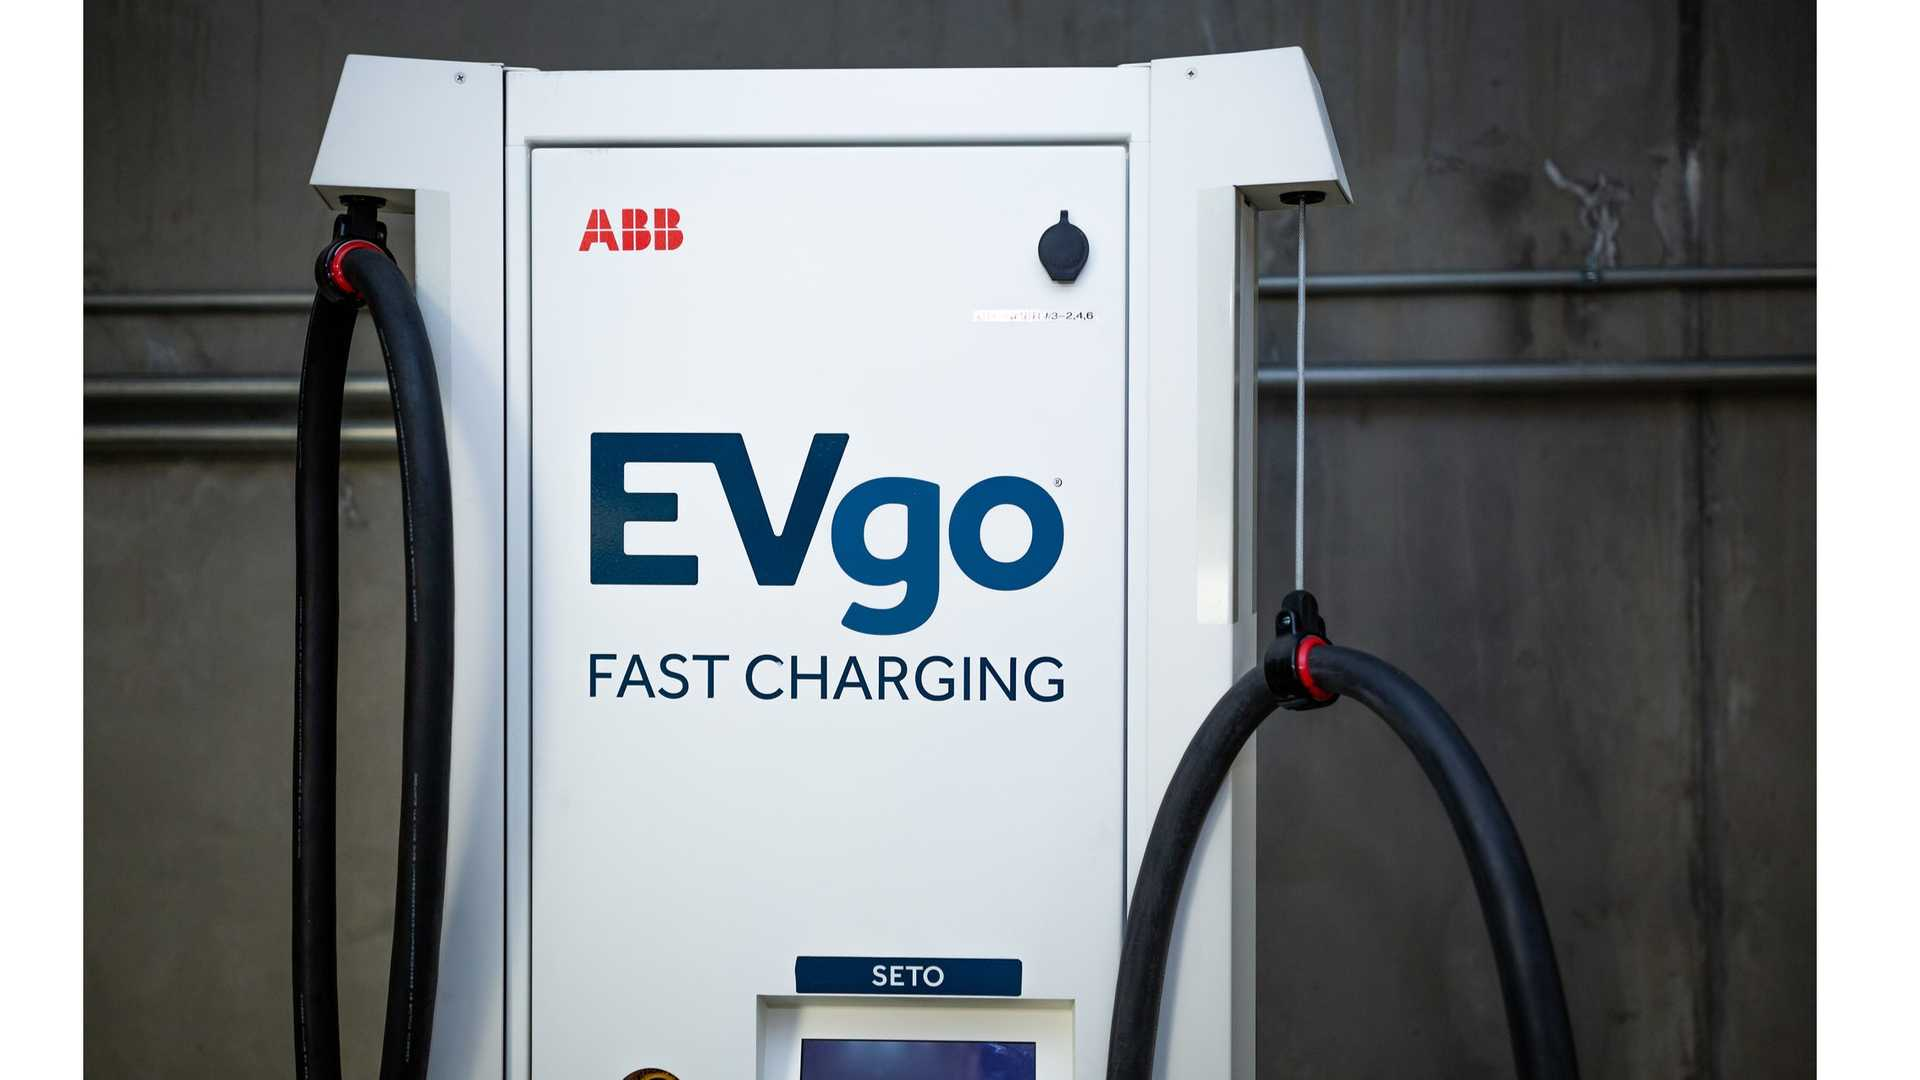 EVgo fast charging station